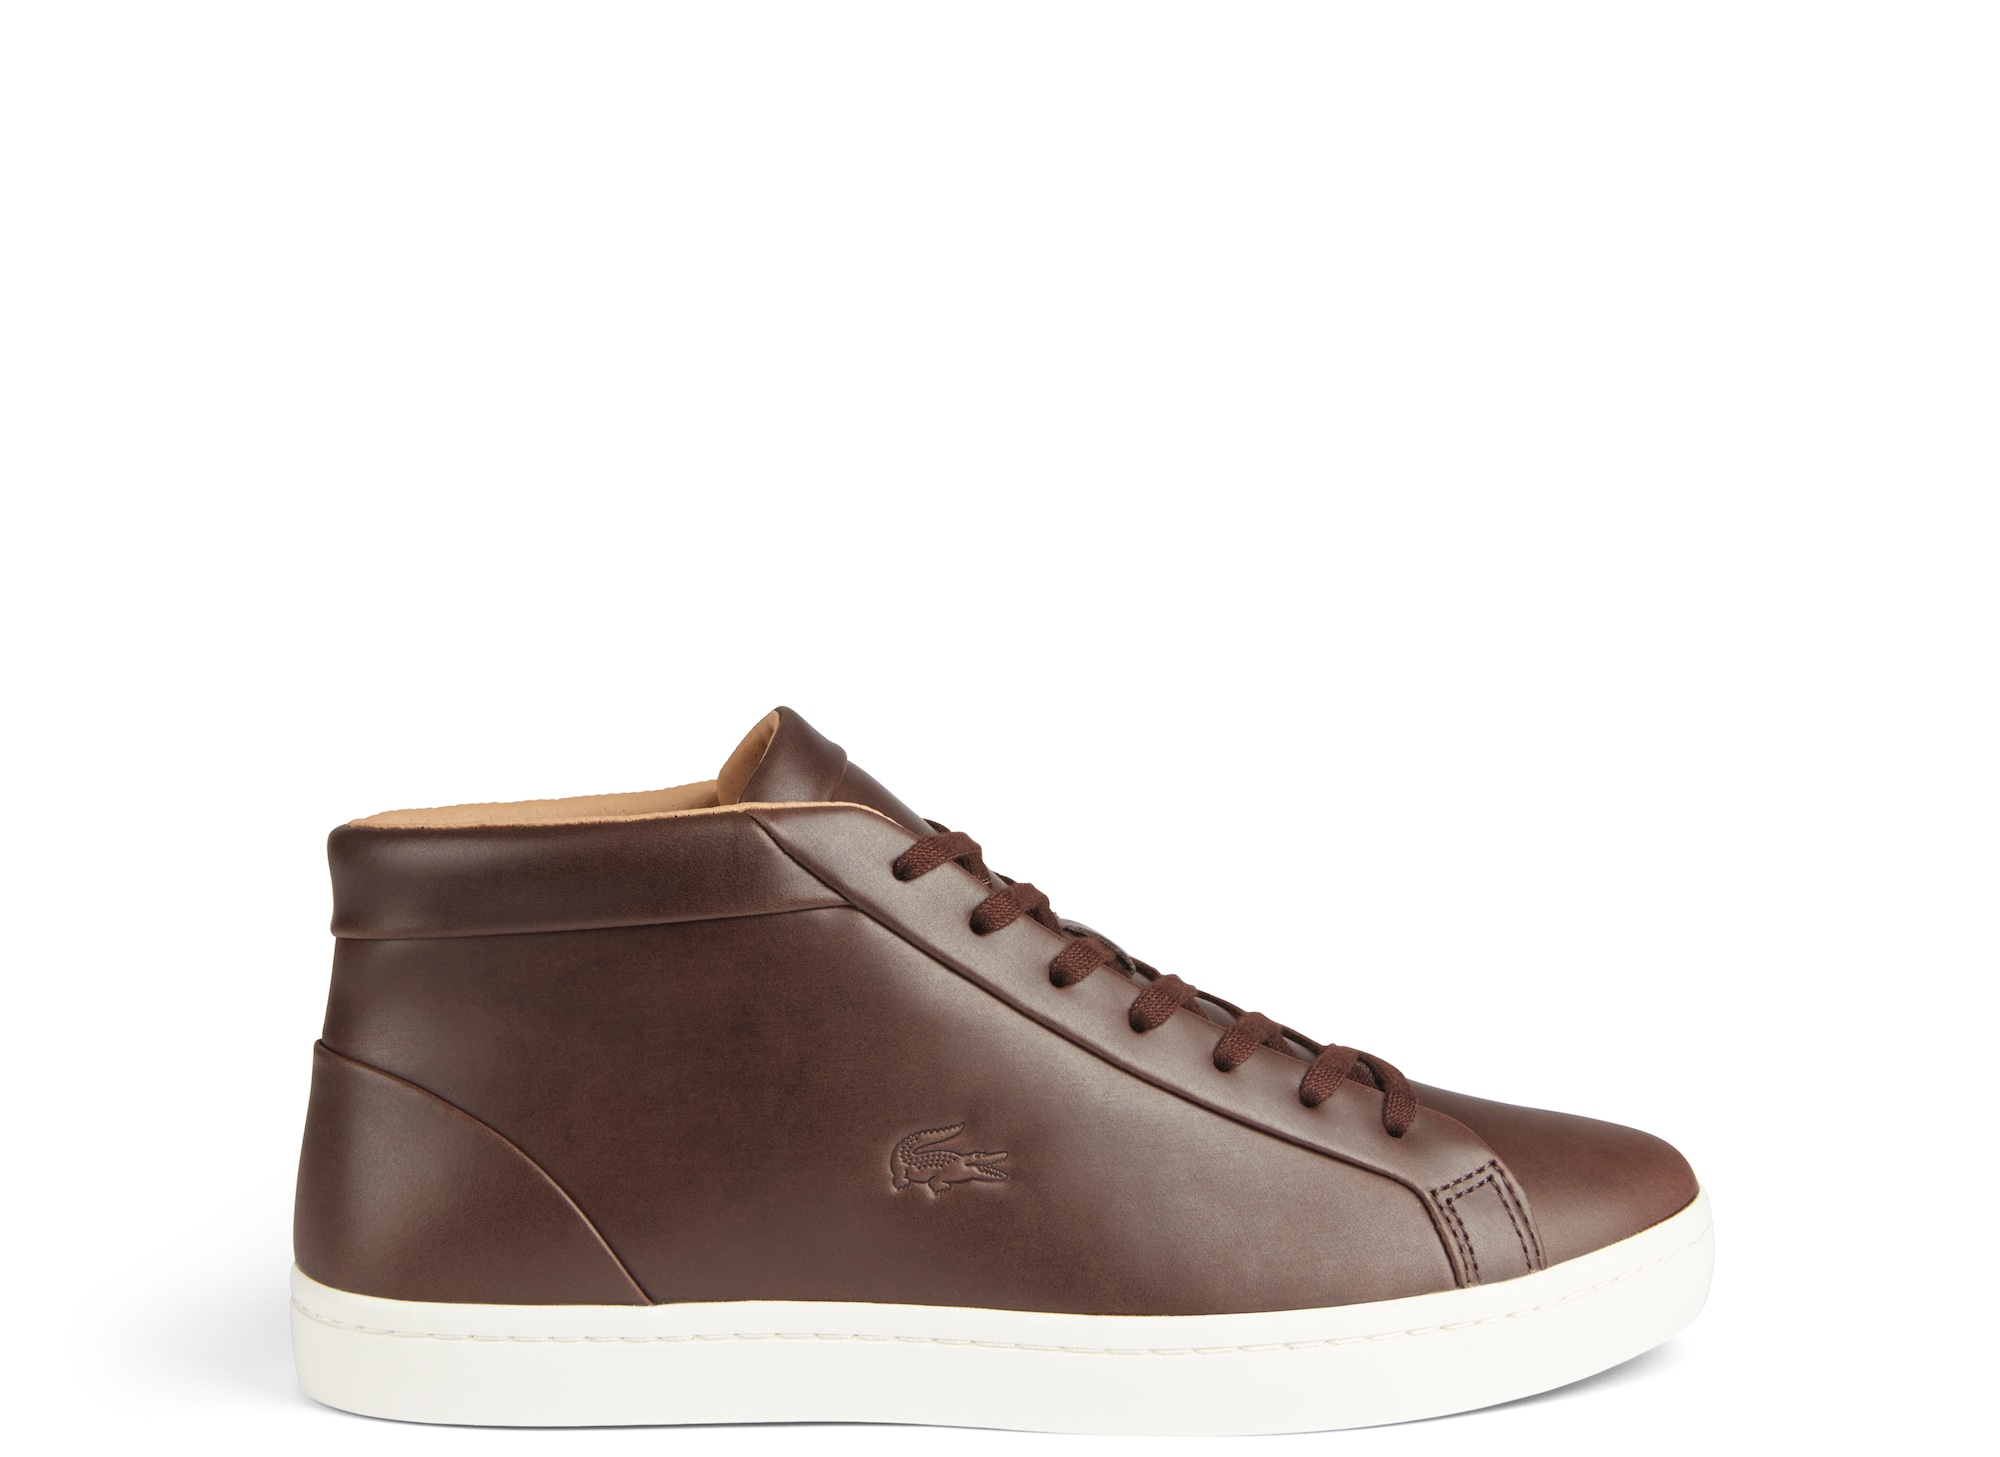 Men's Straightset Chukka Leather Sneakers